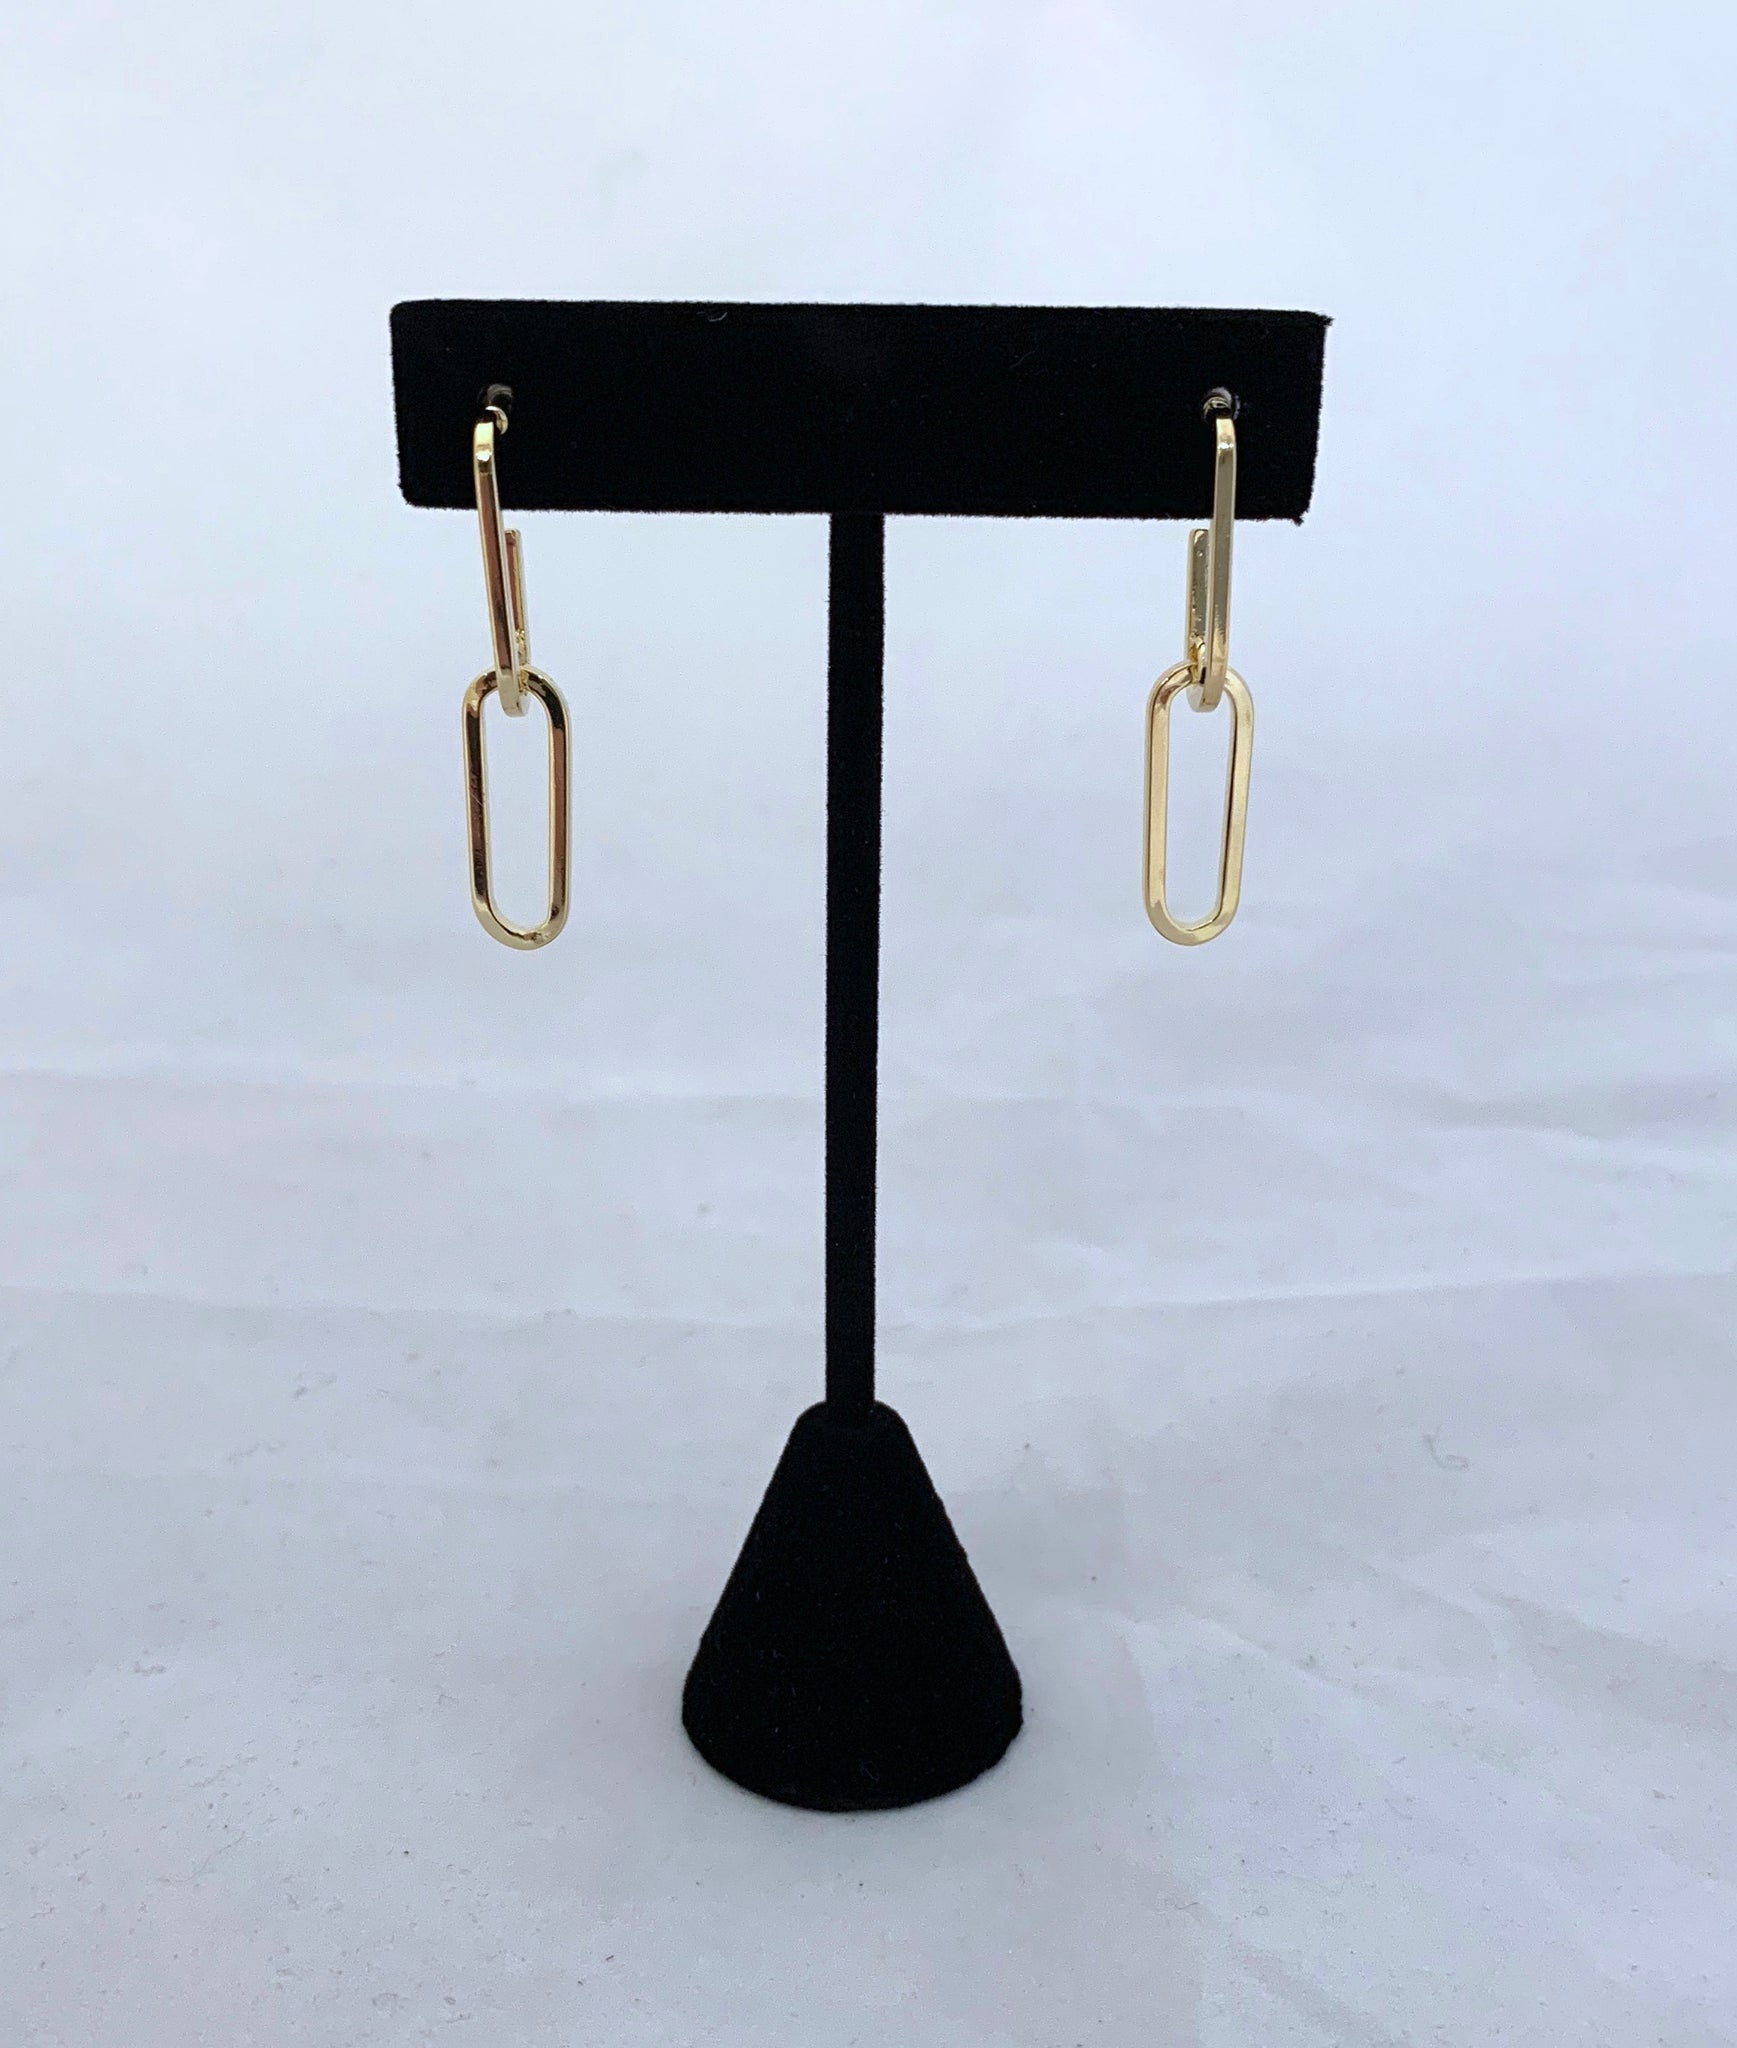 Gold Paperclip Earrings - 2 Links